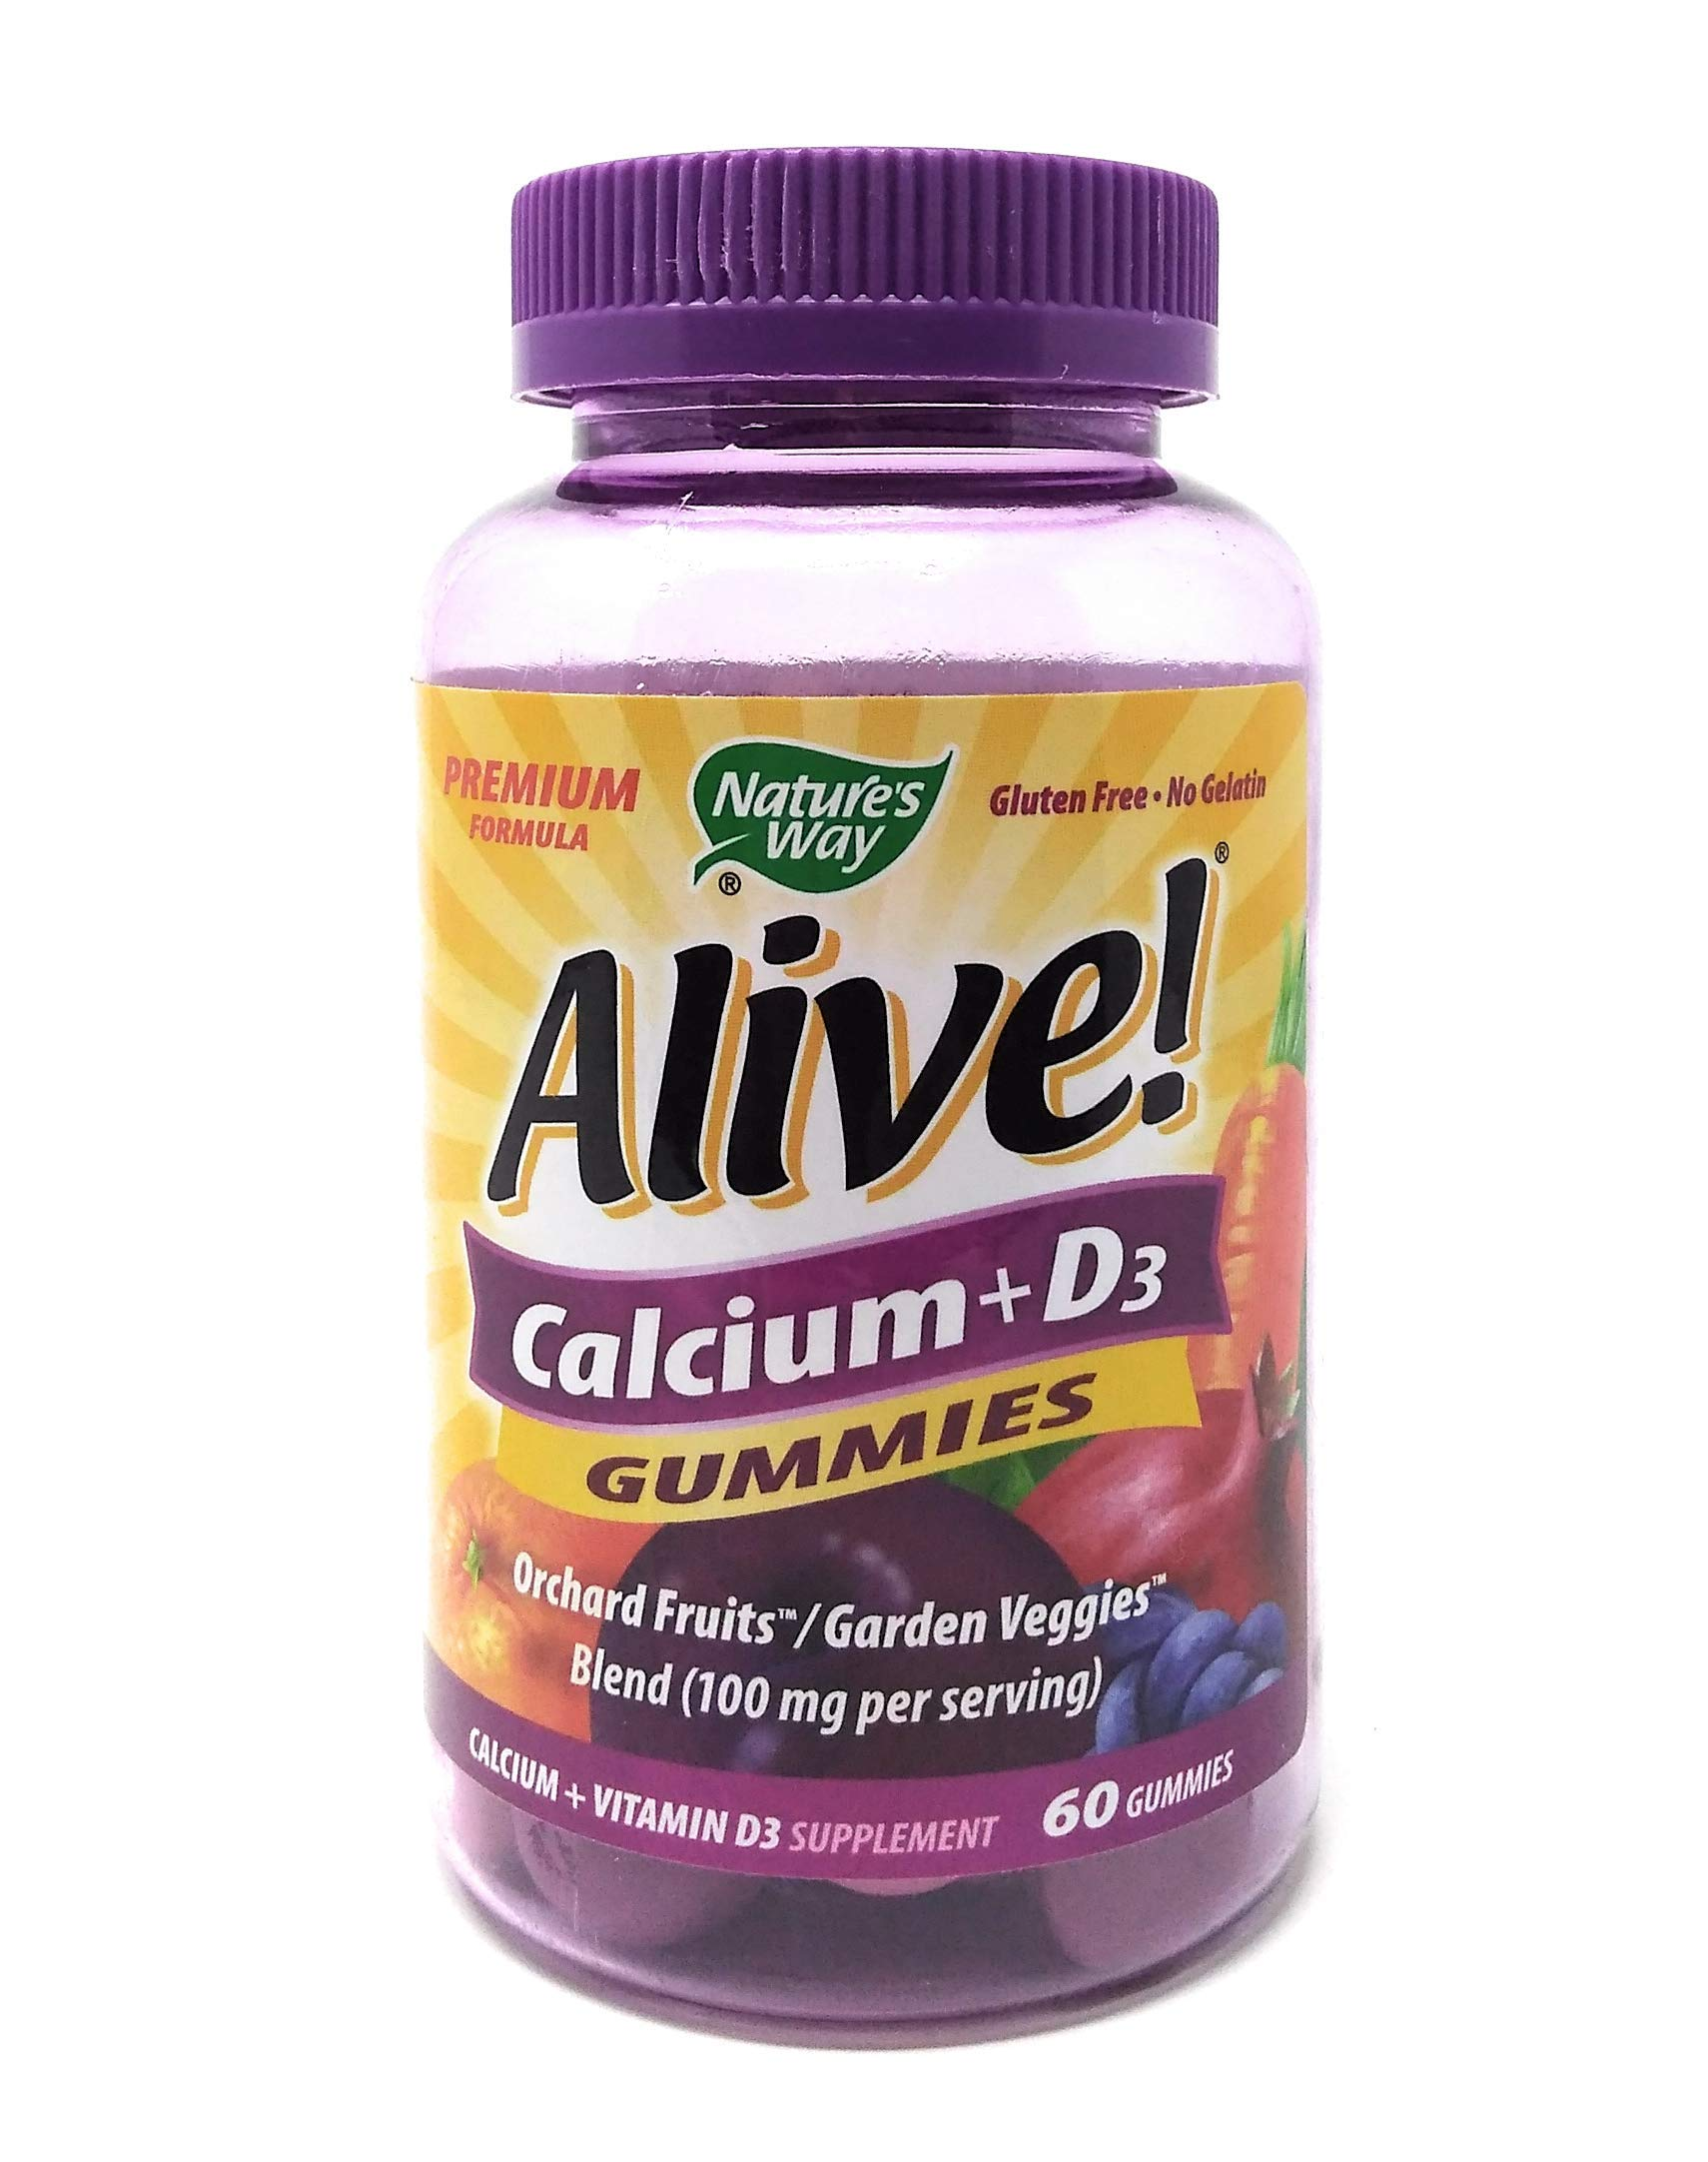 Natures Way Alive! Calcium + D3 Gummies 60 Gummies